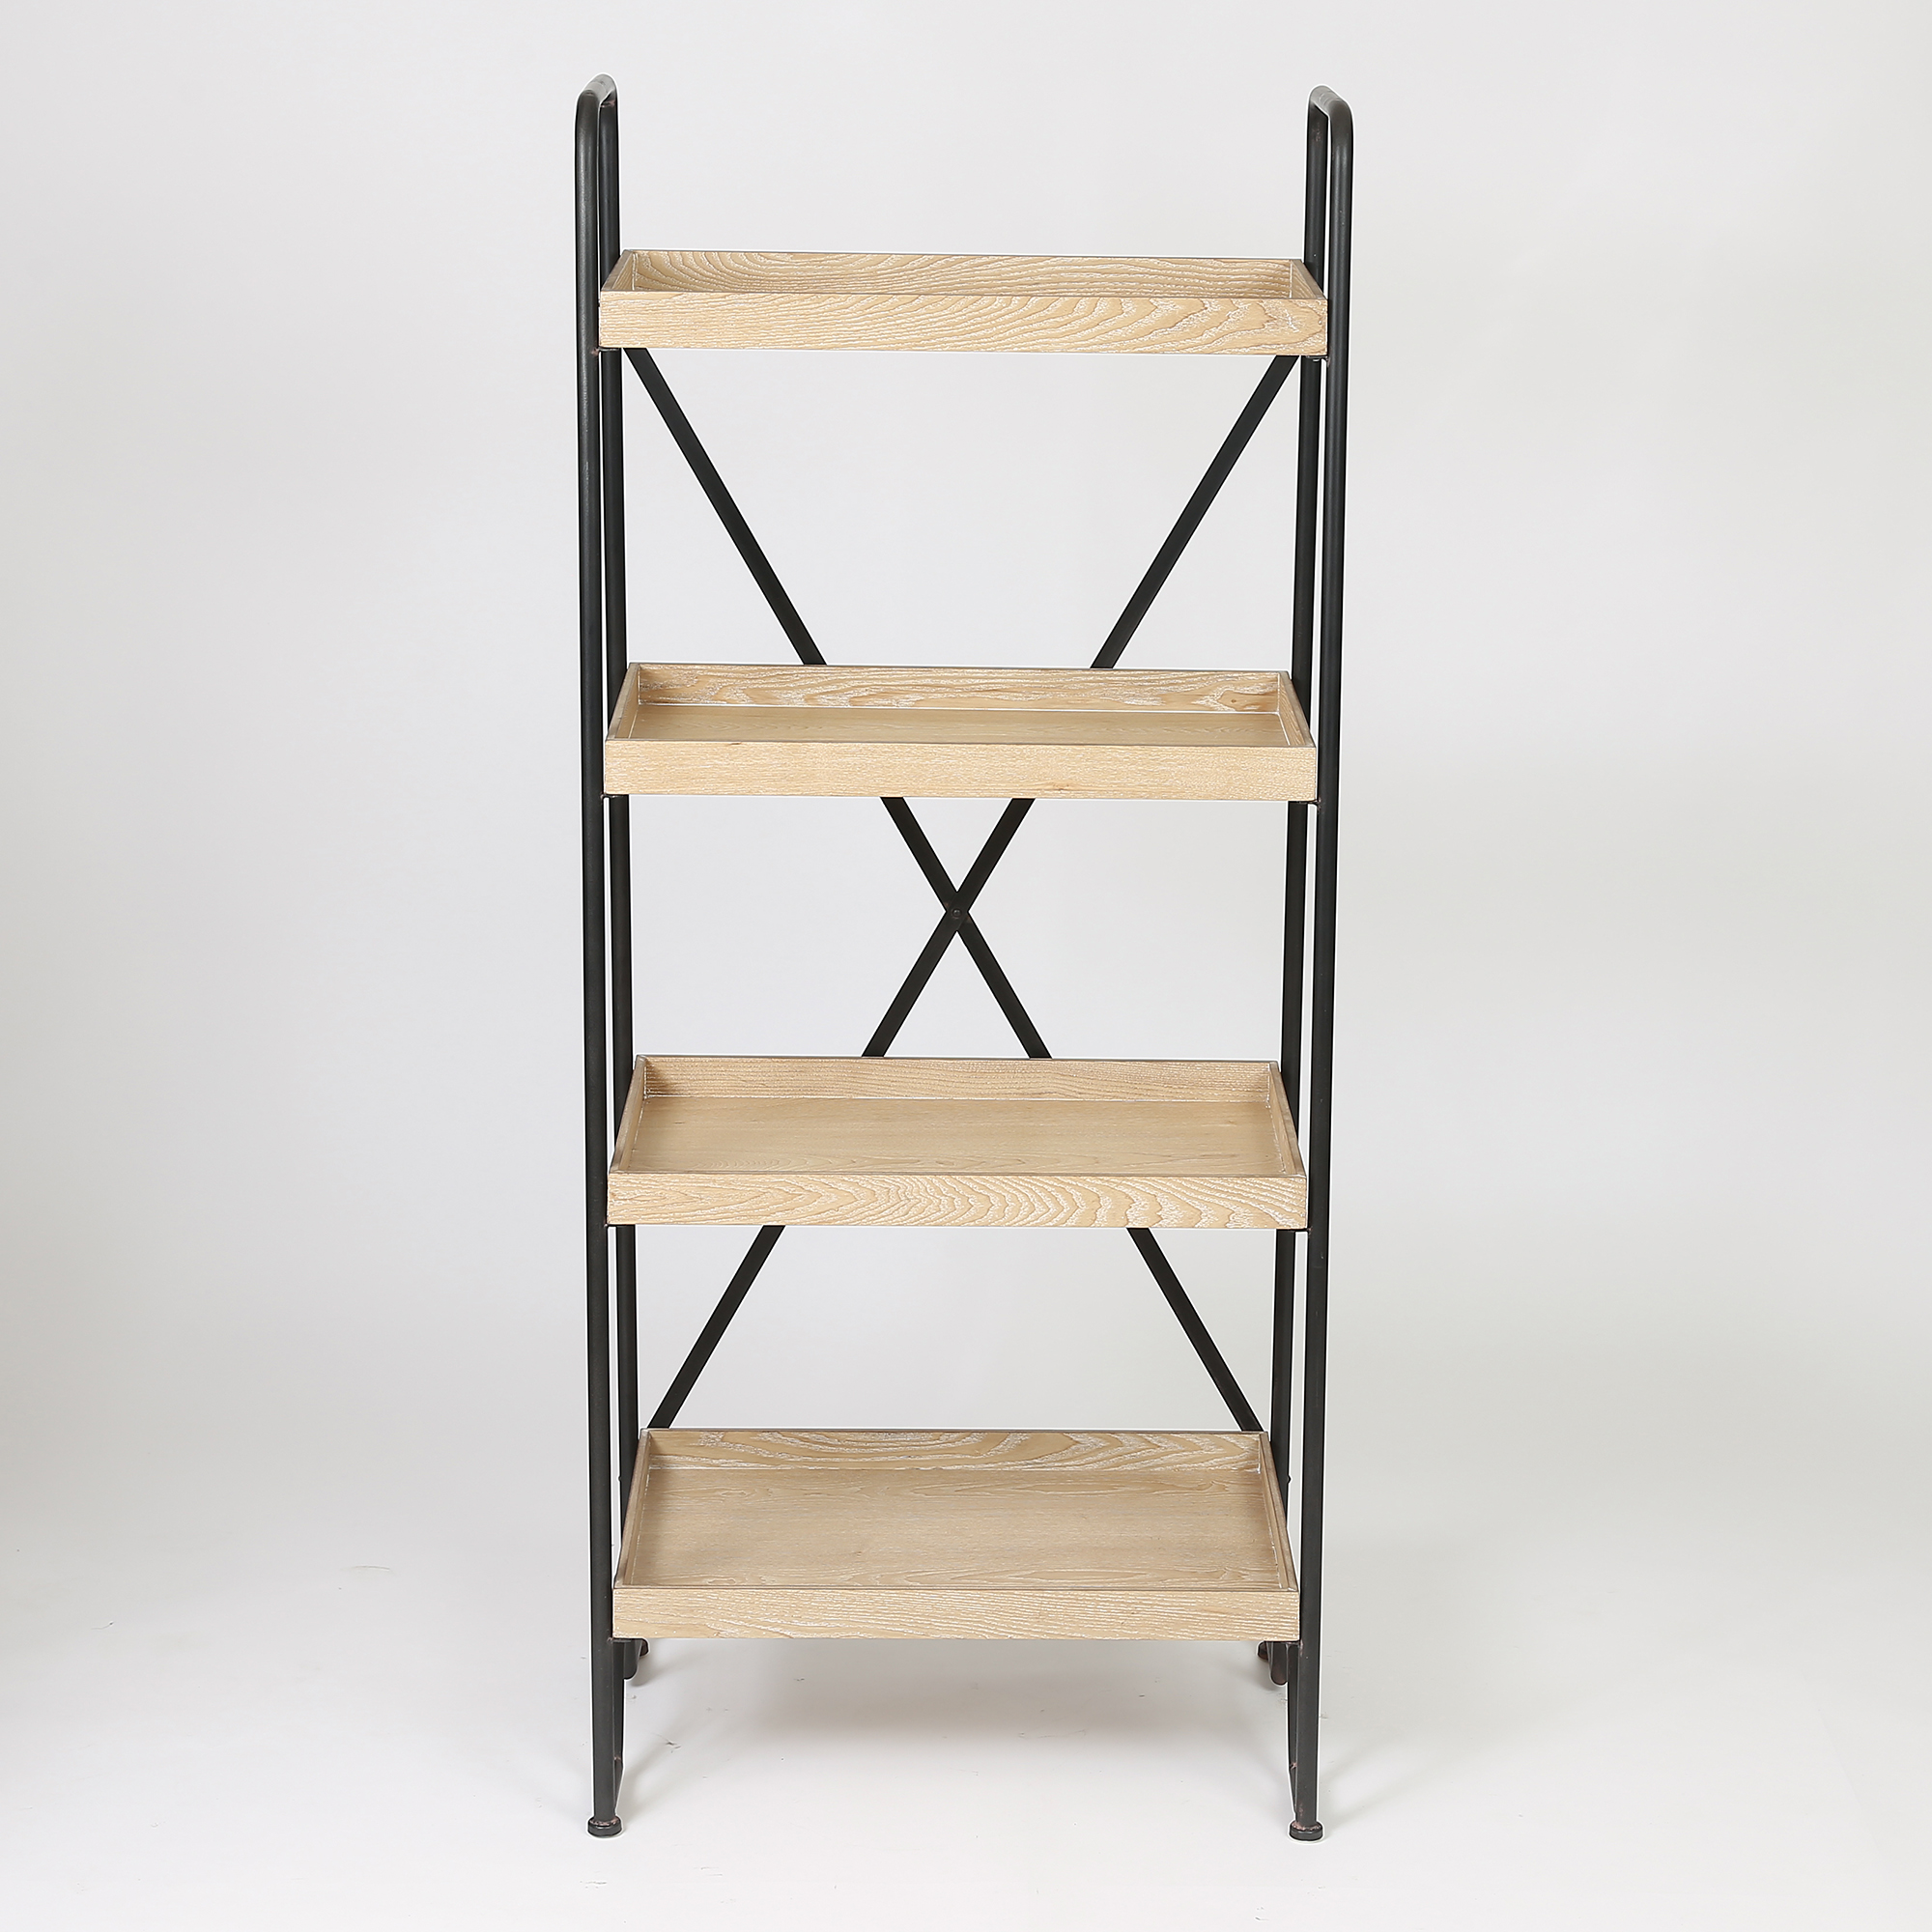 63in. Etagere Bookcase by Winsome House